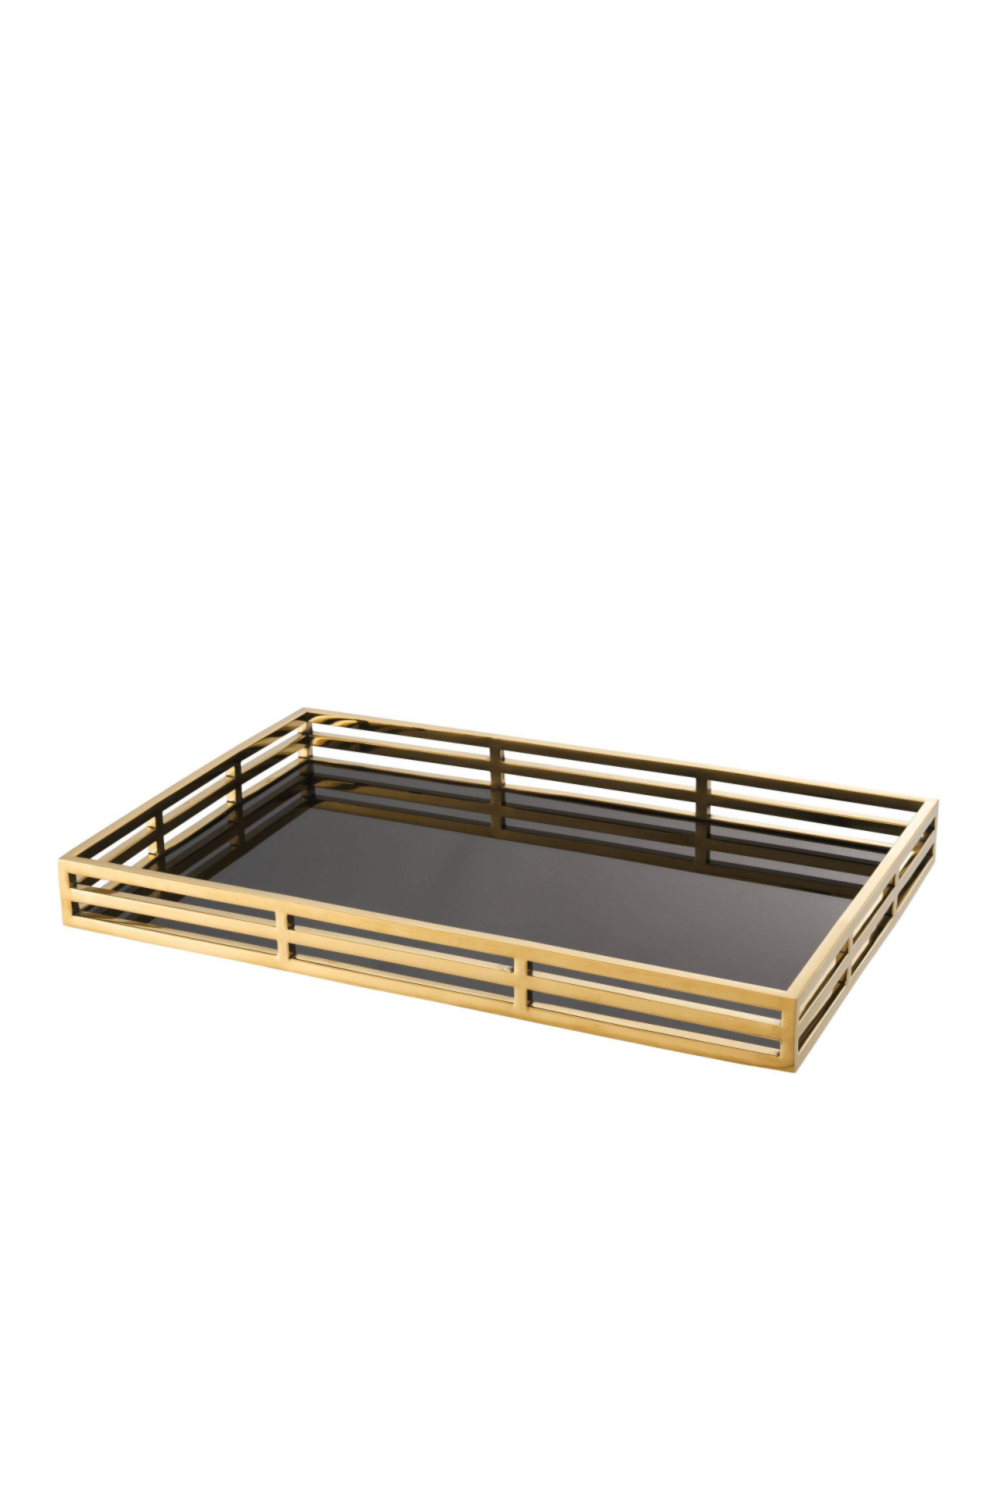 Black and Gold Serving Tray | Eichholtz Giacomo